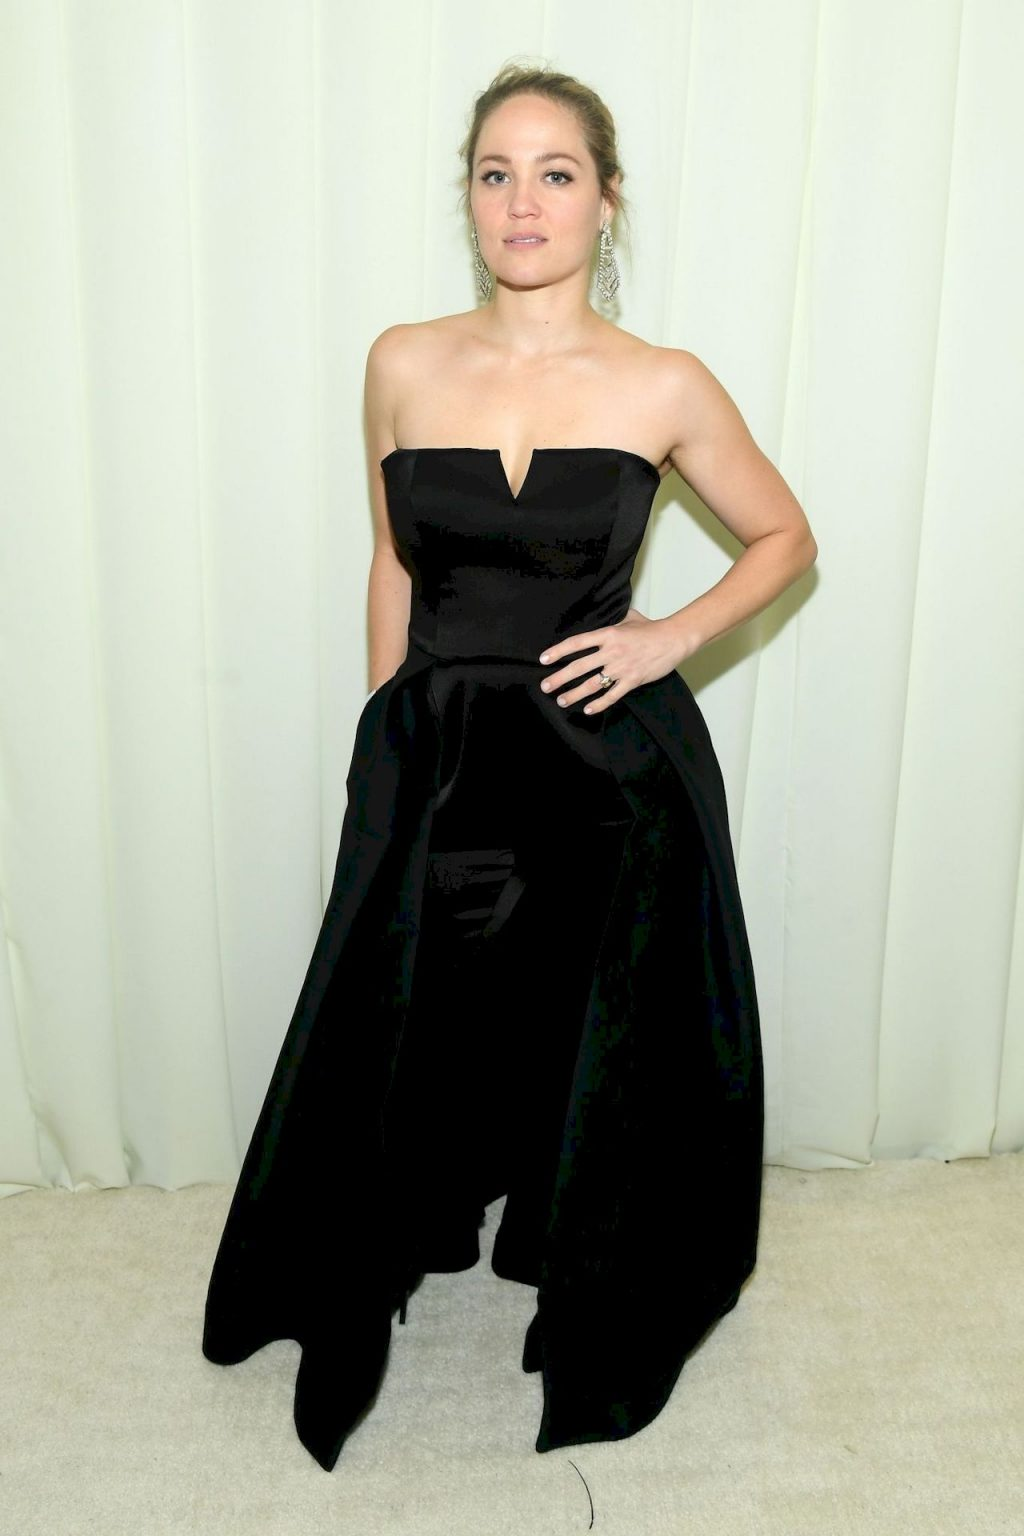 Erika Christensen Displays Her Cleavage at the Elton John 28th Annual Academy Awards Viewing Party (21 Photos)